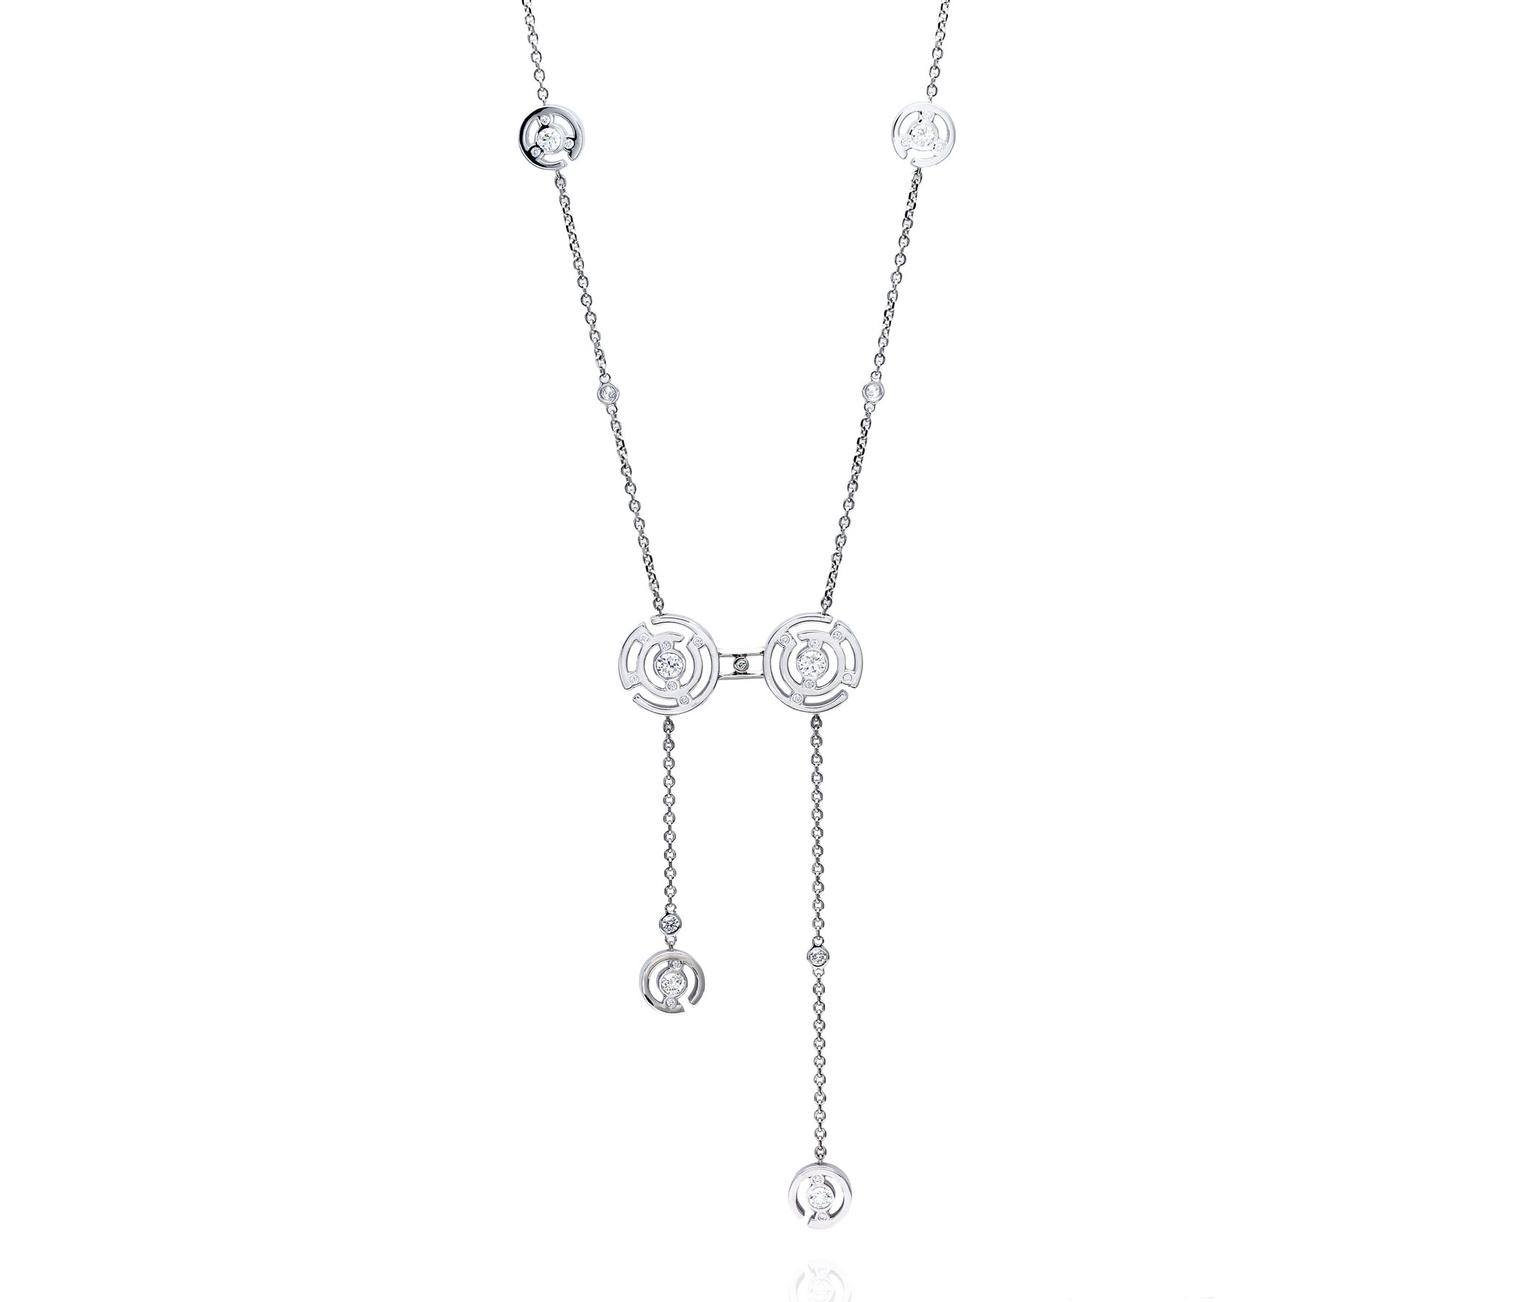 Boodles-Maze-Necklace-Zoom